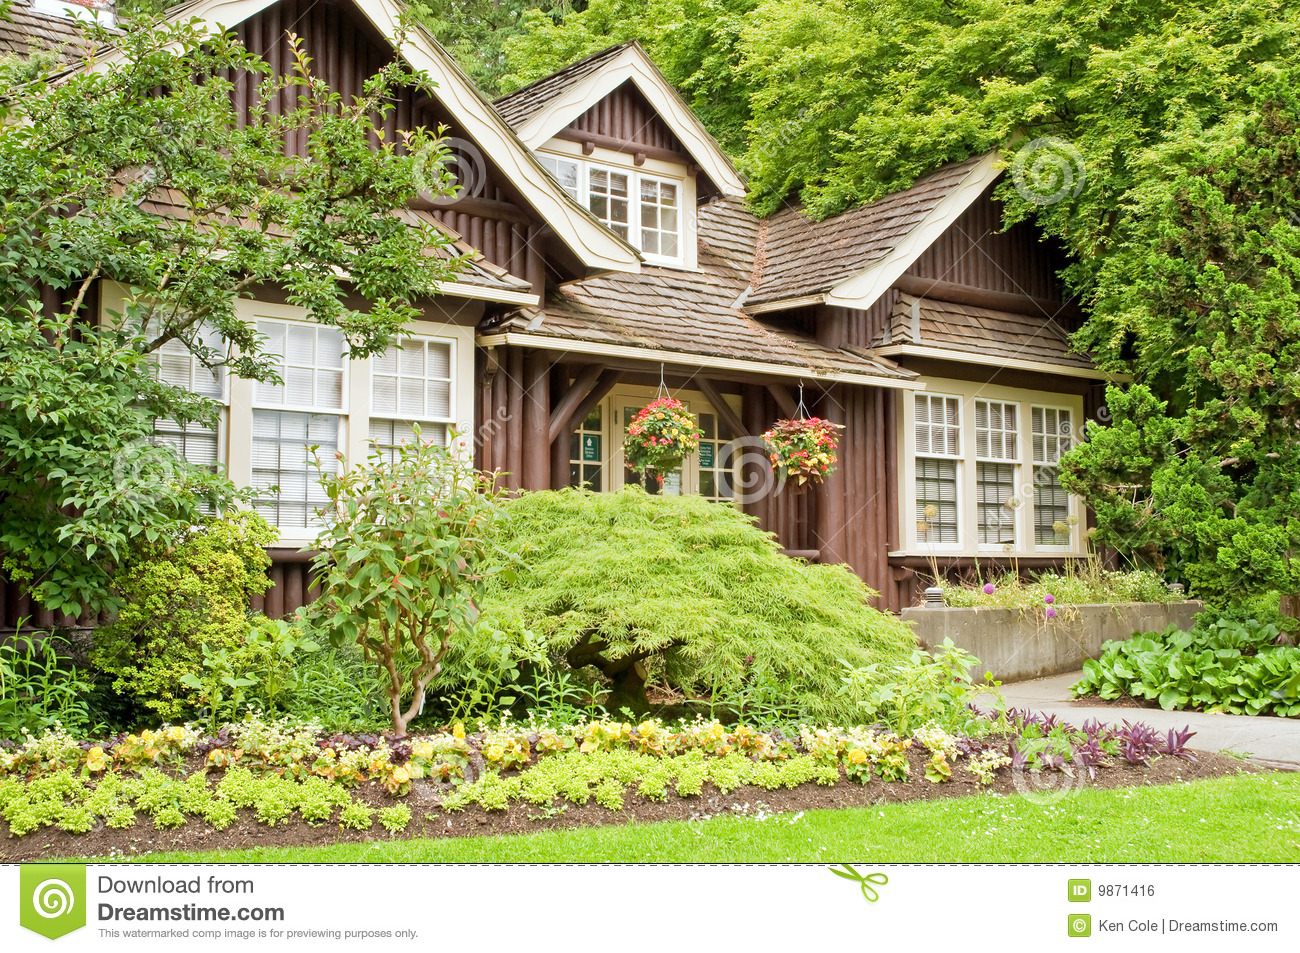 Landscaped log cottage in woods royalty free stock image image 9871416 - Cottage image ...